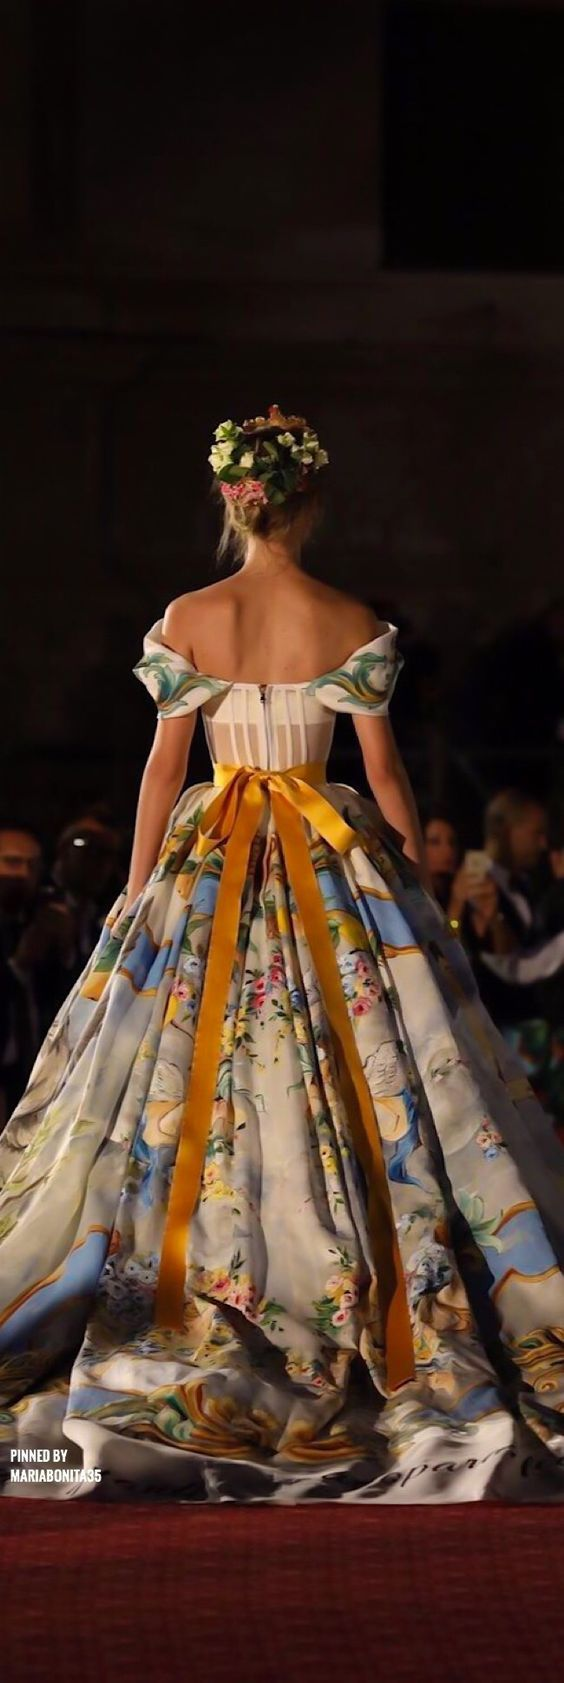 Fashion & Lifestyle | #Highend Haute Couture Herbst Mode Trends Frauen 2017. Lux… – pia